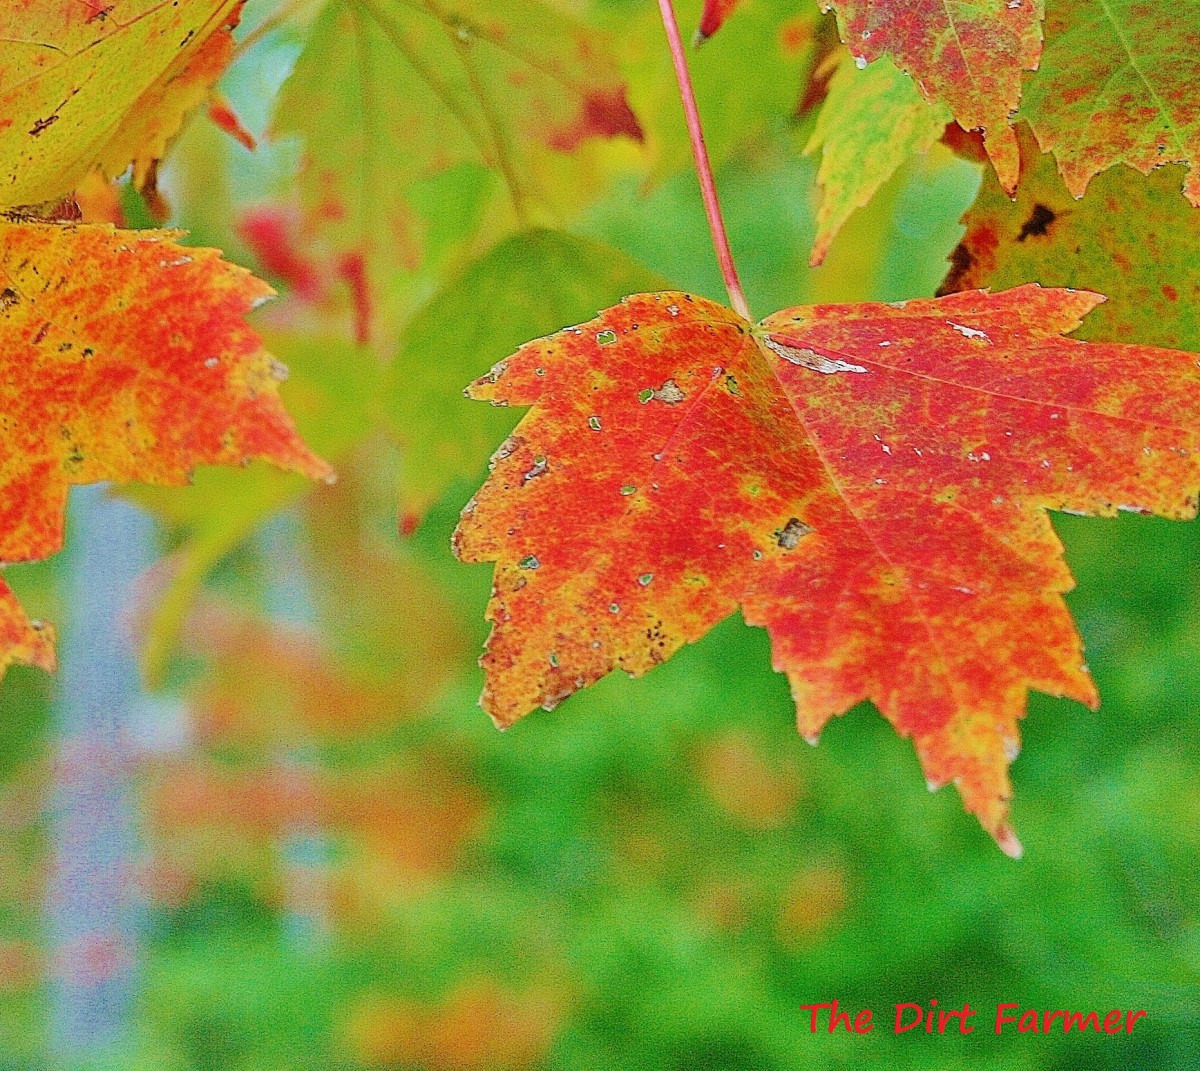 When decomposed, autumn leaves can be used both as mulch & fertilizer.